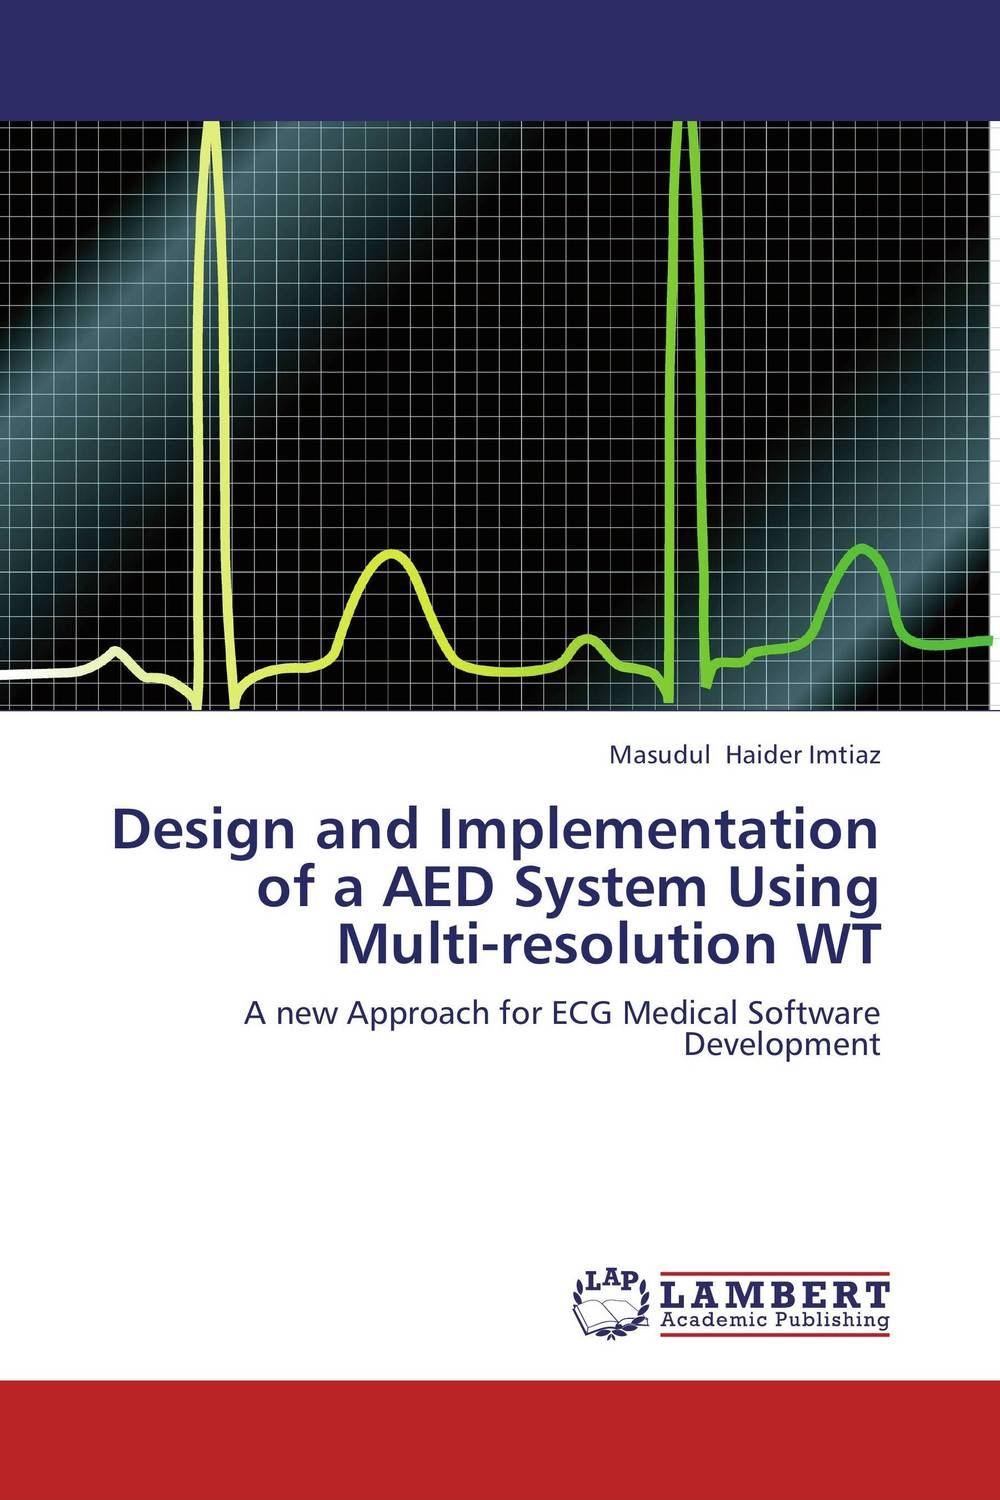 все цены на Design and Implementation of a AED System Using Multi-resolution WT